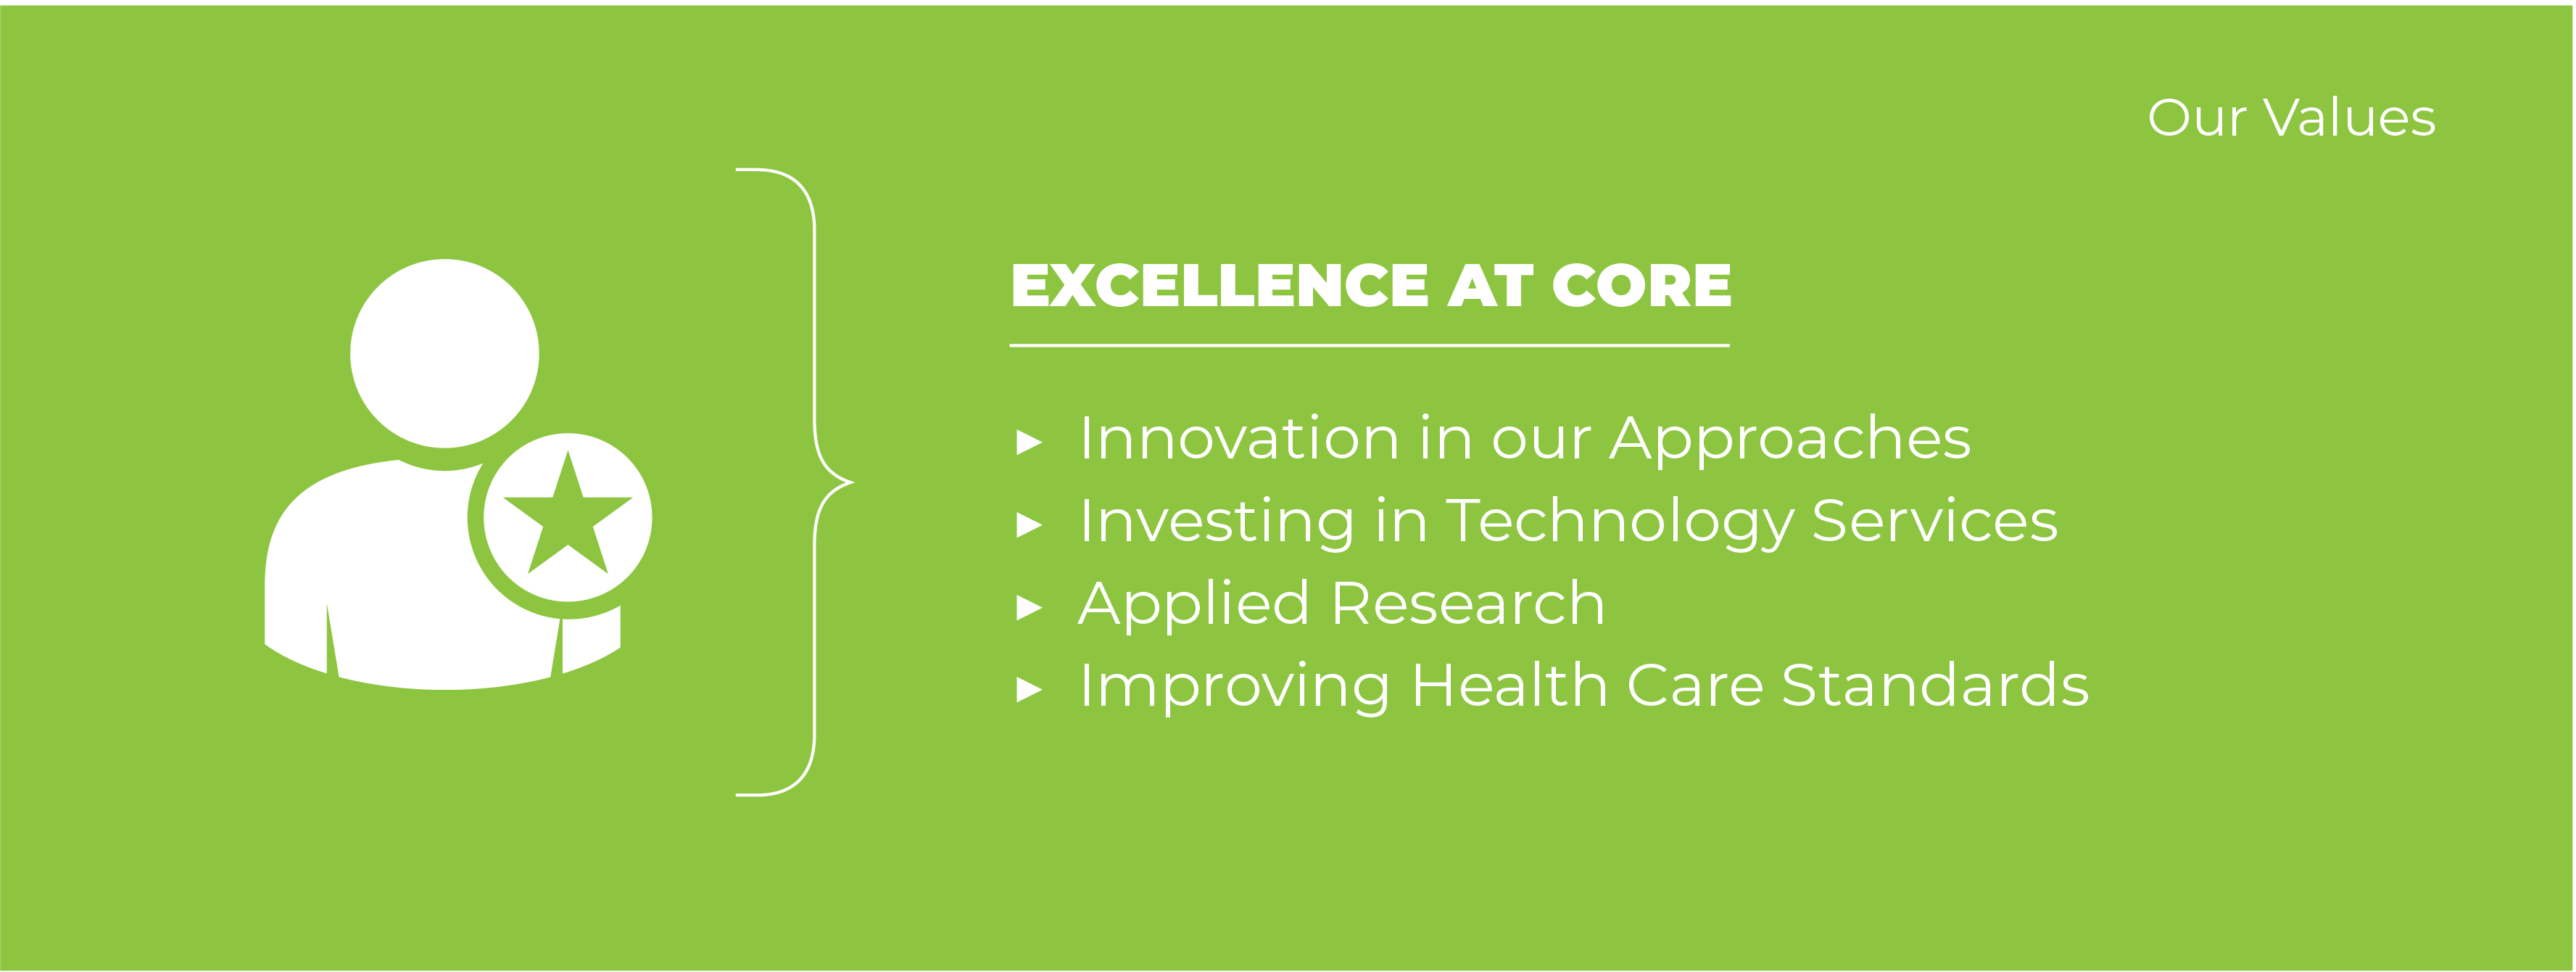 Excellence at Core